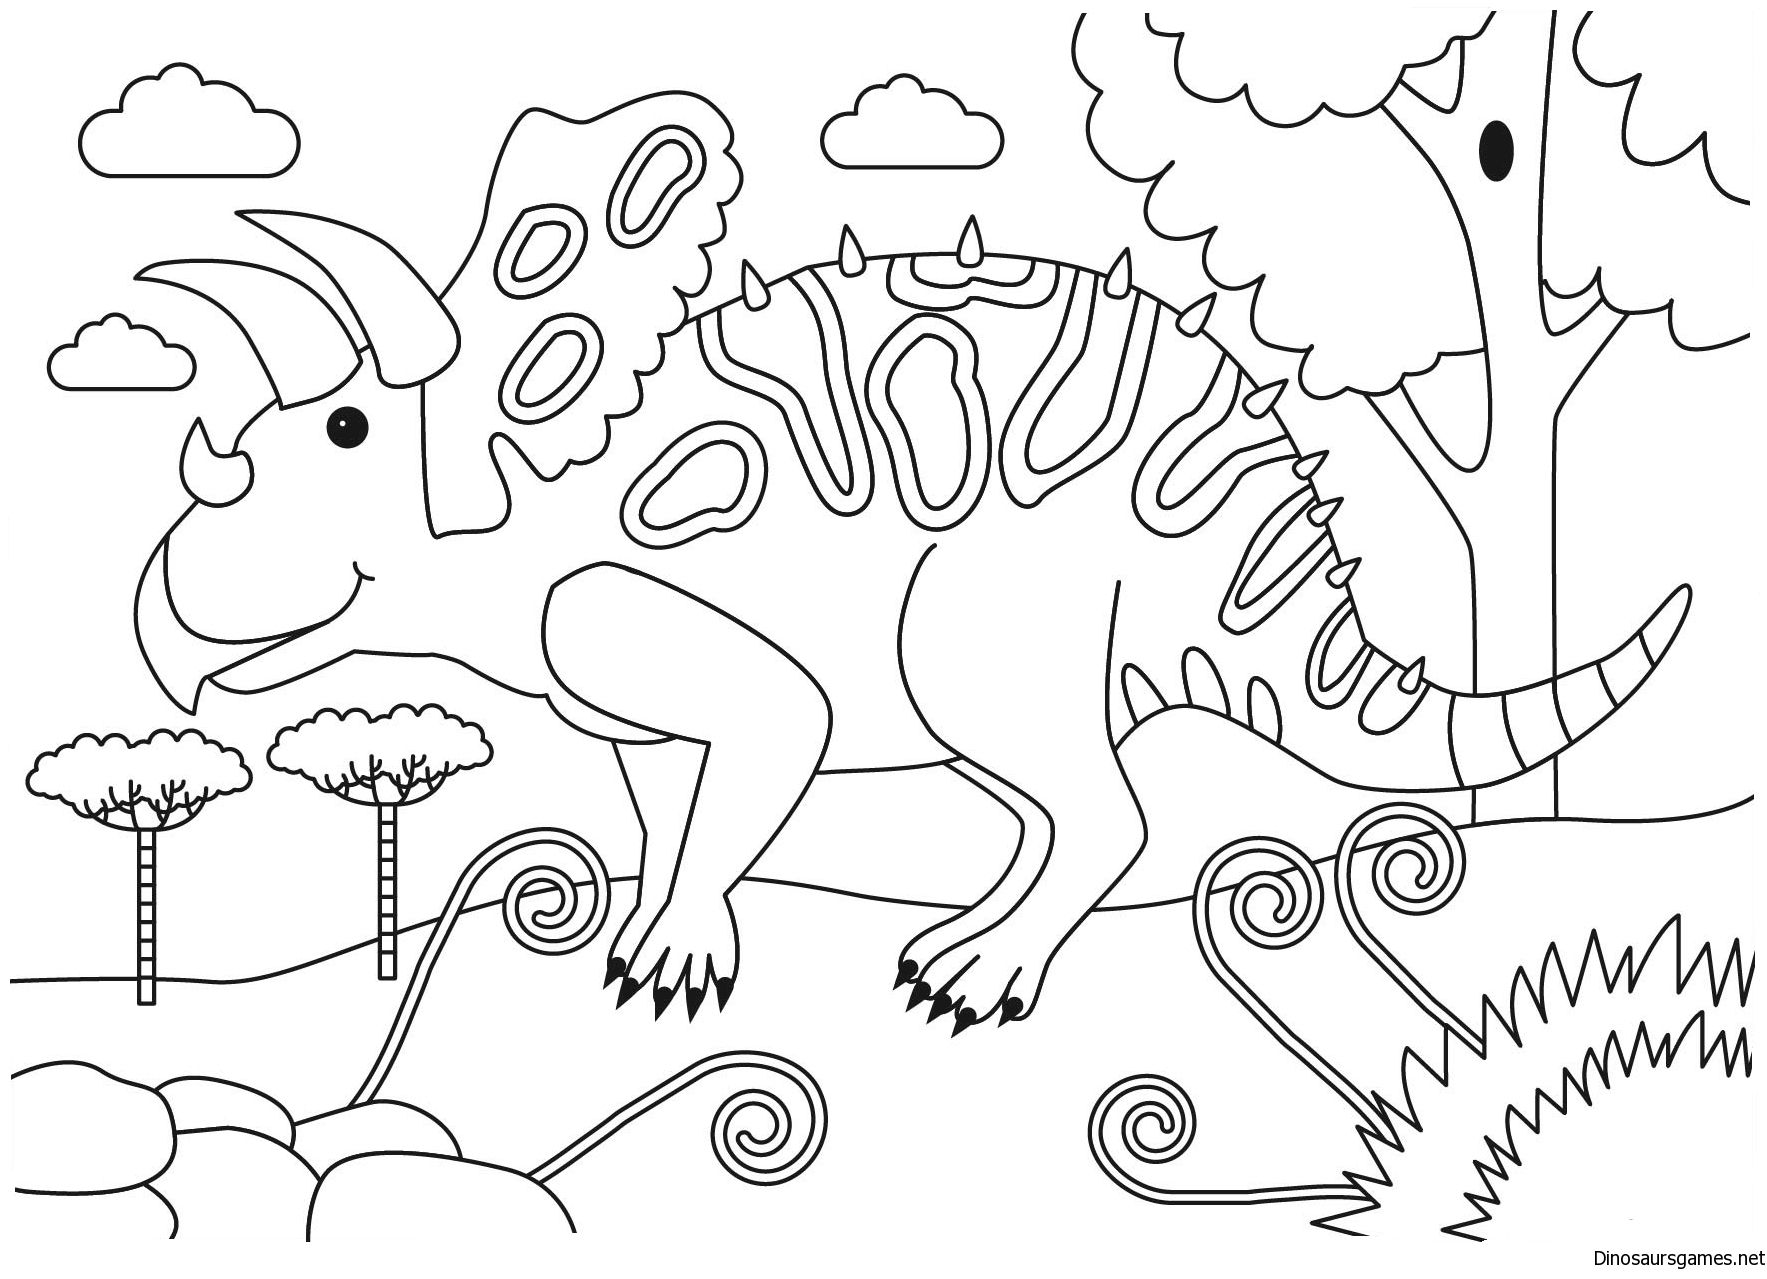 Get Torosaurus Coloring Page From Dinosaursgames Net Site To Print